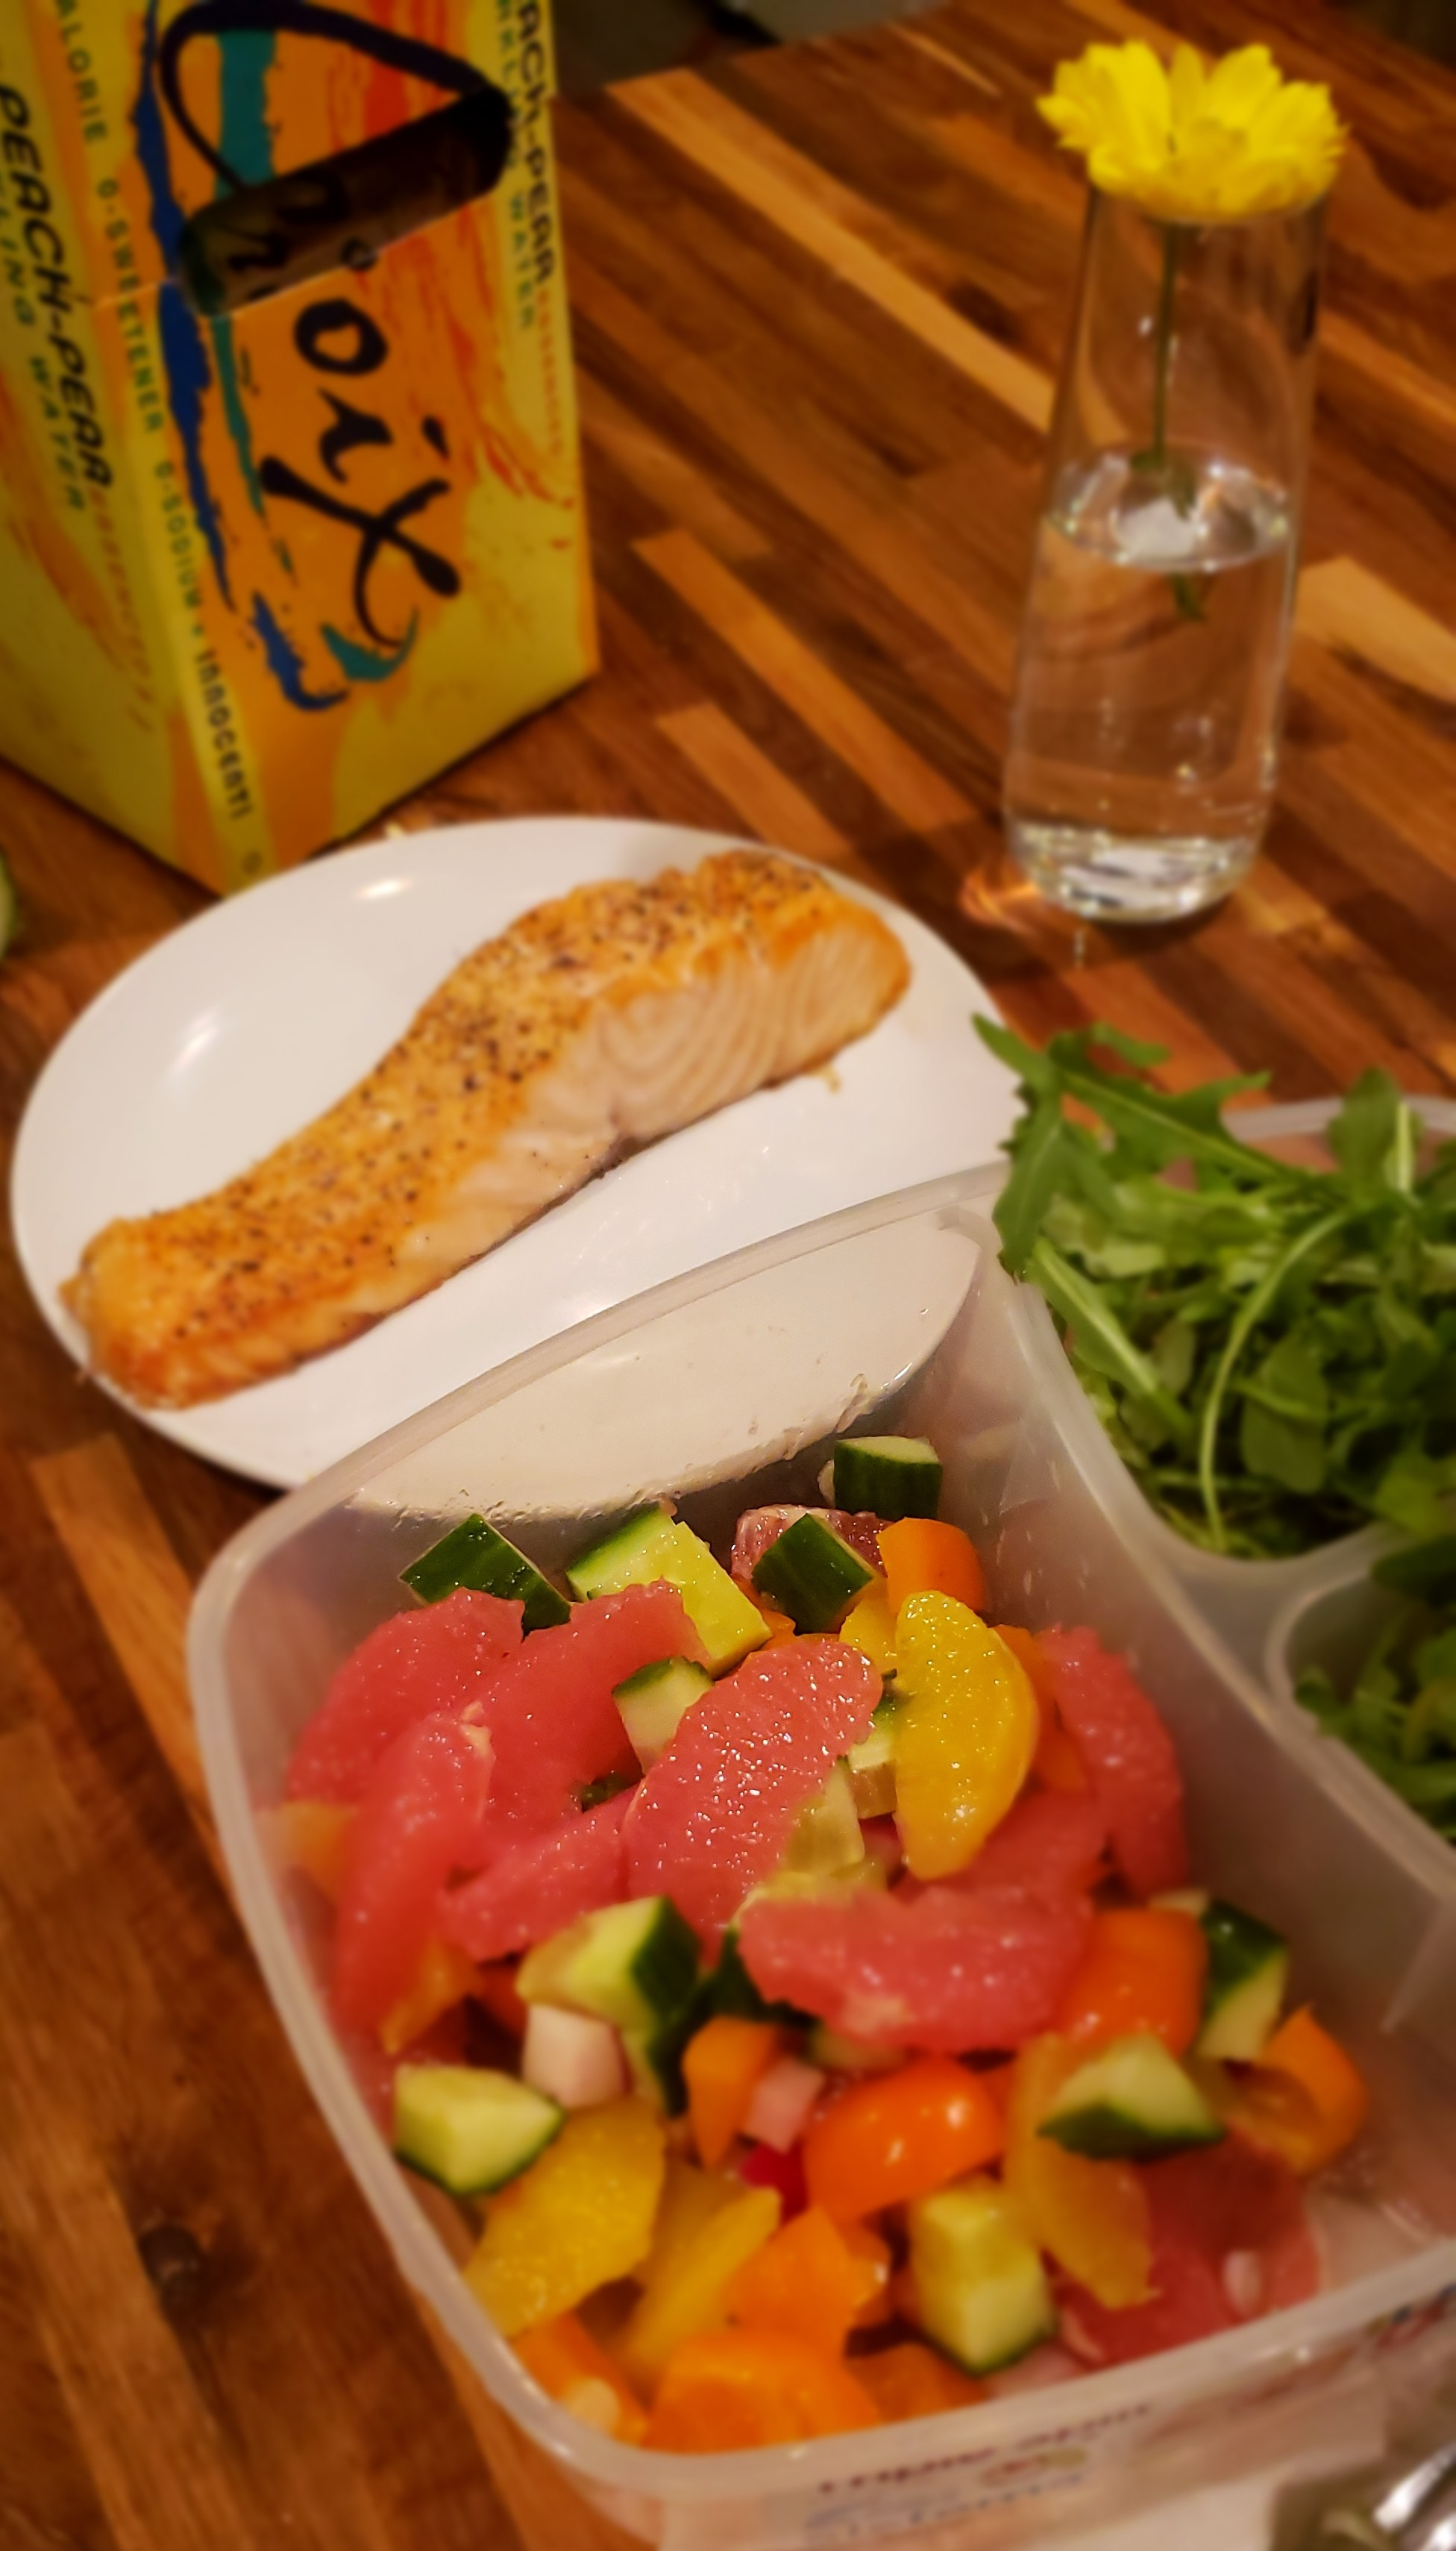 Dressed, chopped veggies are stored separate from the arugula in a to-go container. Salmon on the side.